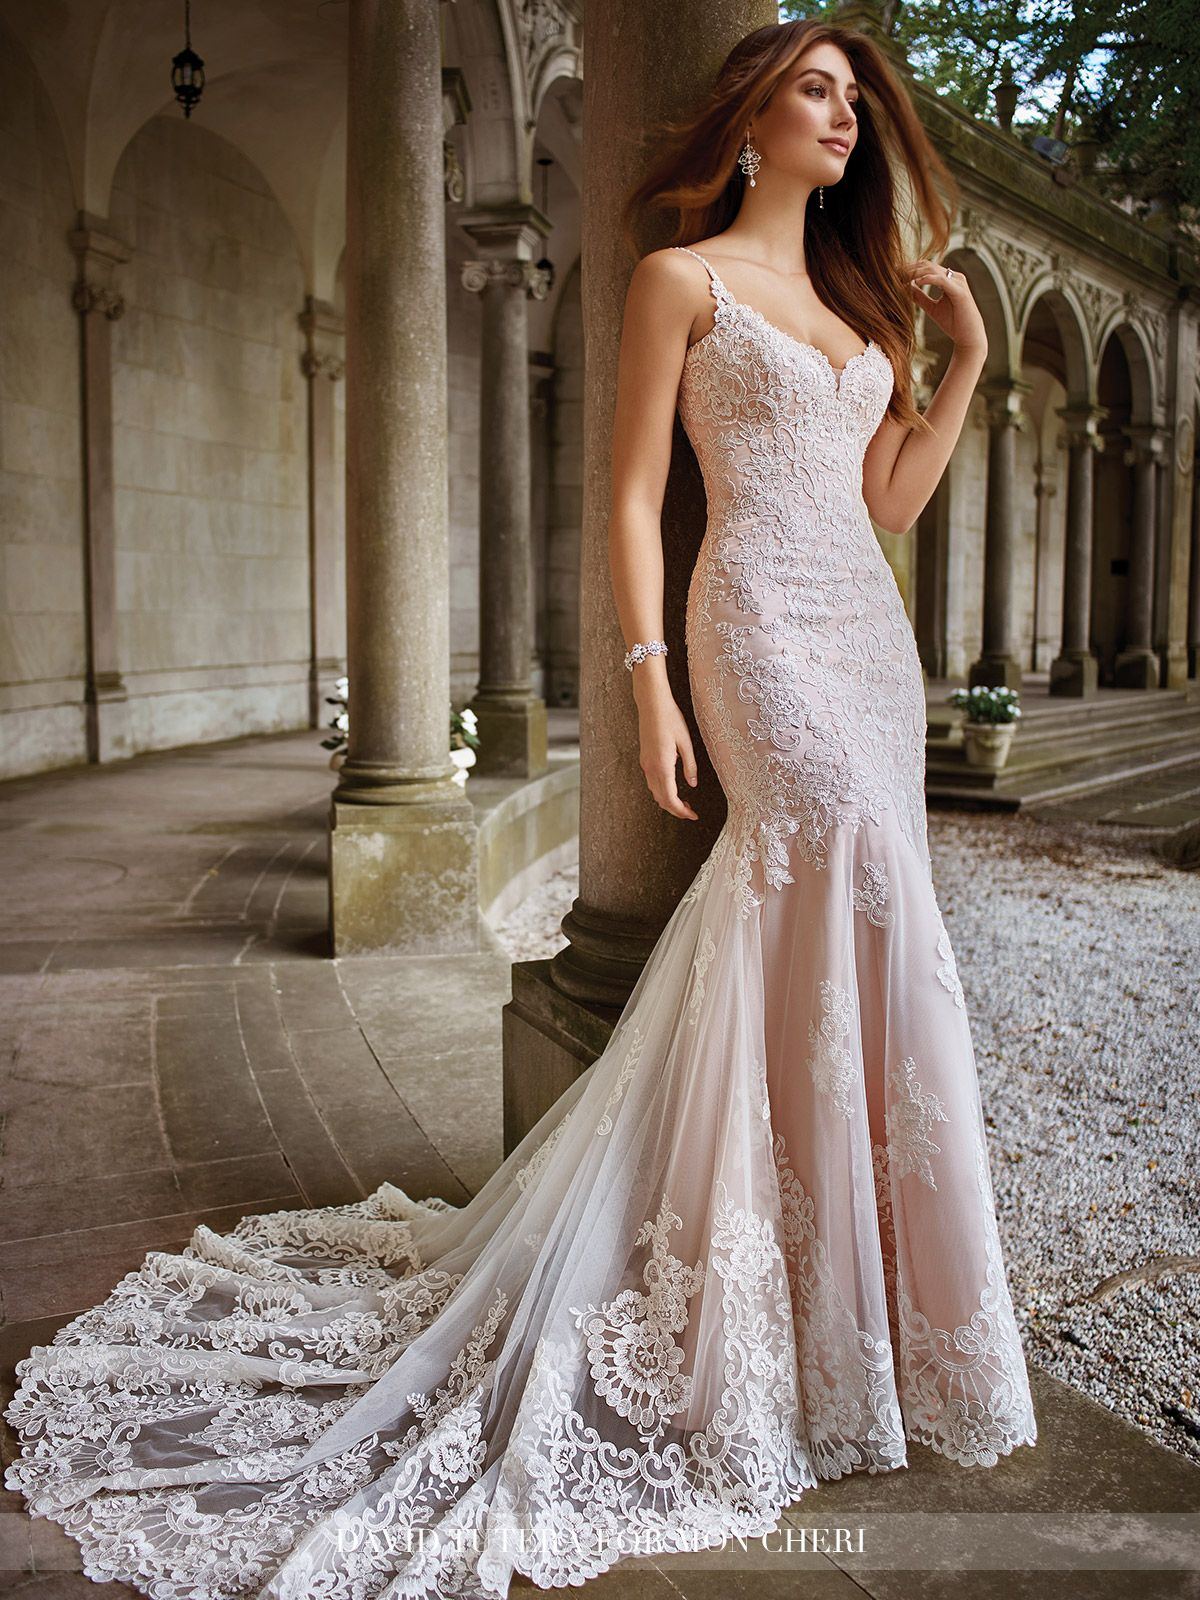 23c93631089f5 Sleeveless re-embroidered Alençon lace on tulle over soft satin sheath with  hand-beaded spaghetti straps